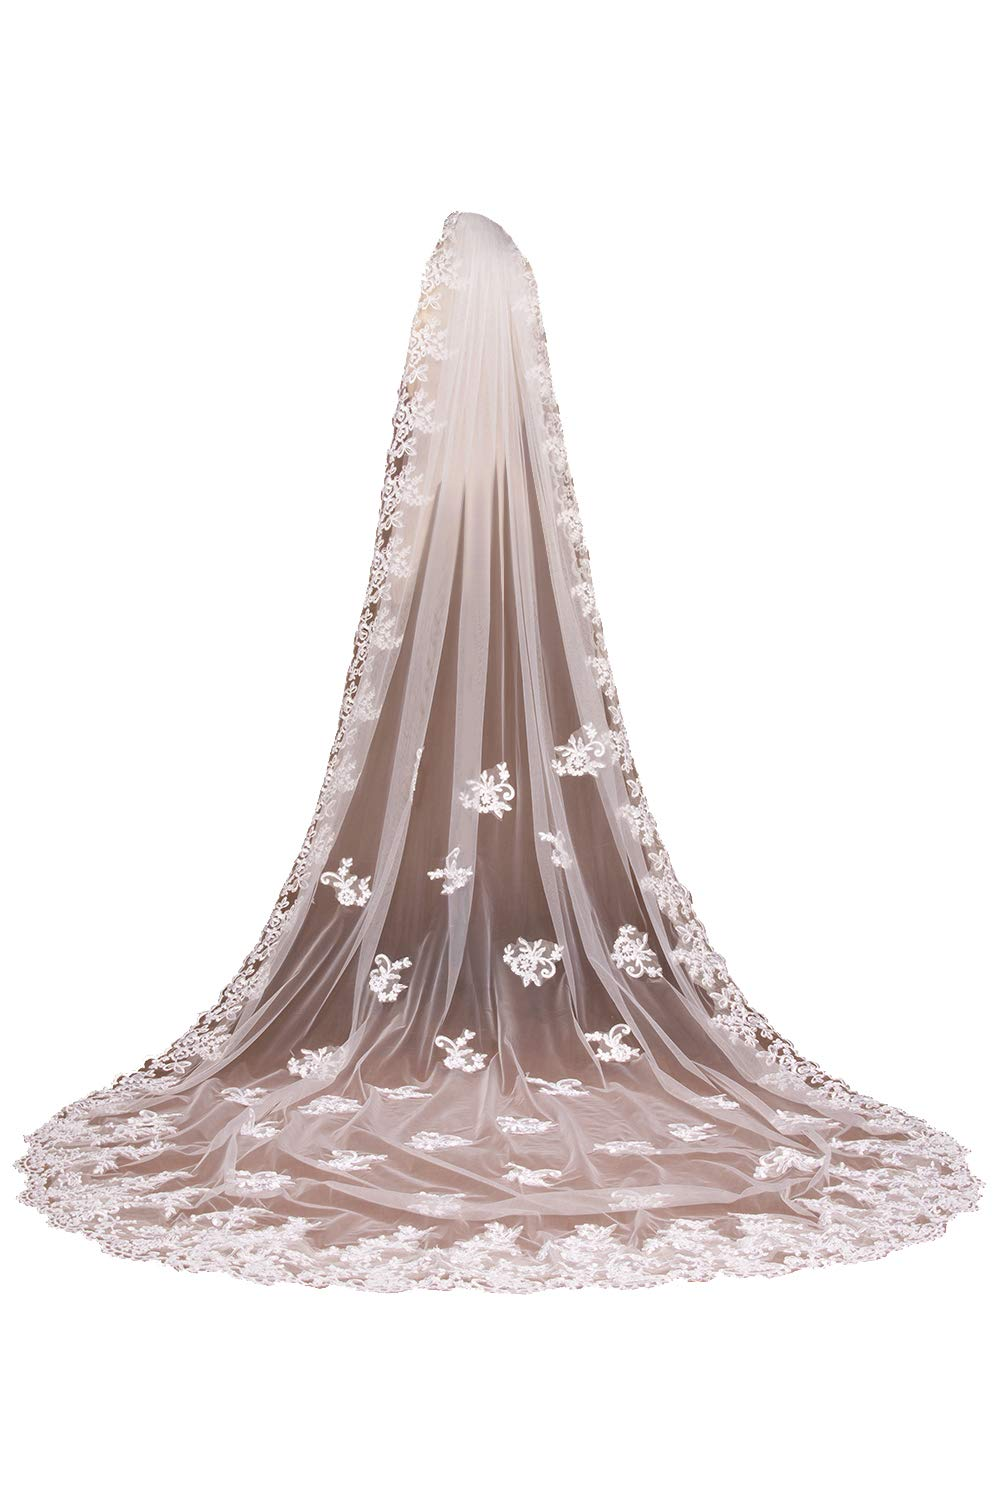 Babyonlinedress Soft Tulle Lace Long Veil For Wedding Brides,Ivory. by Babyonlinedress